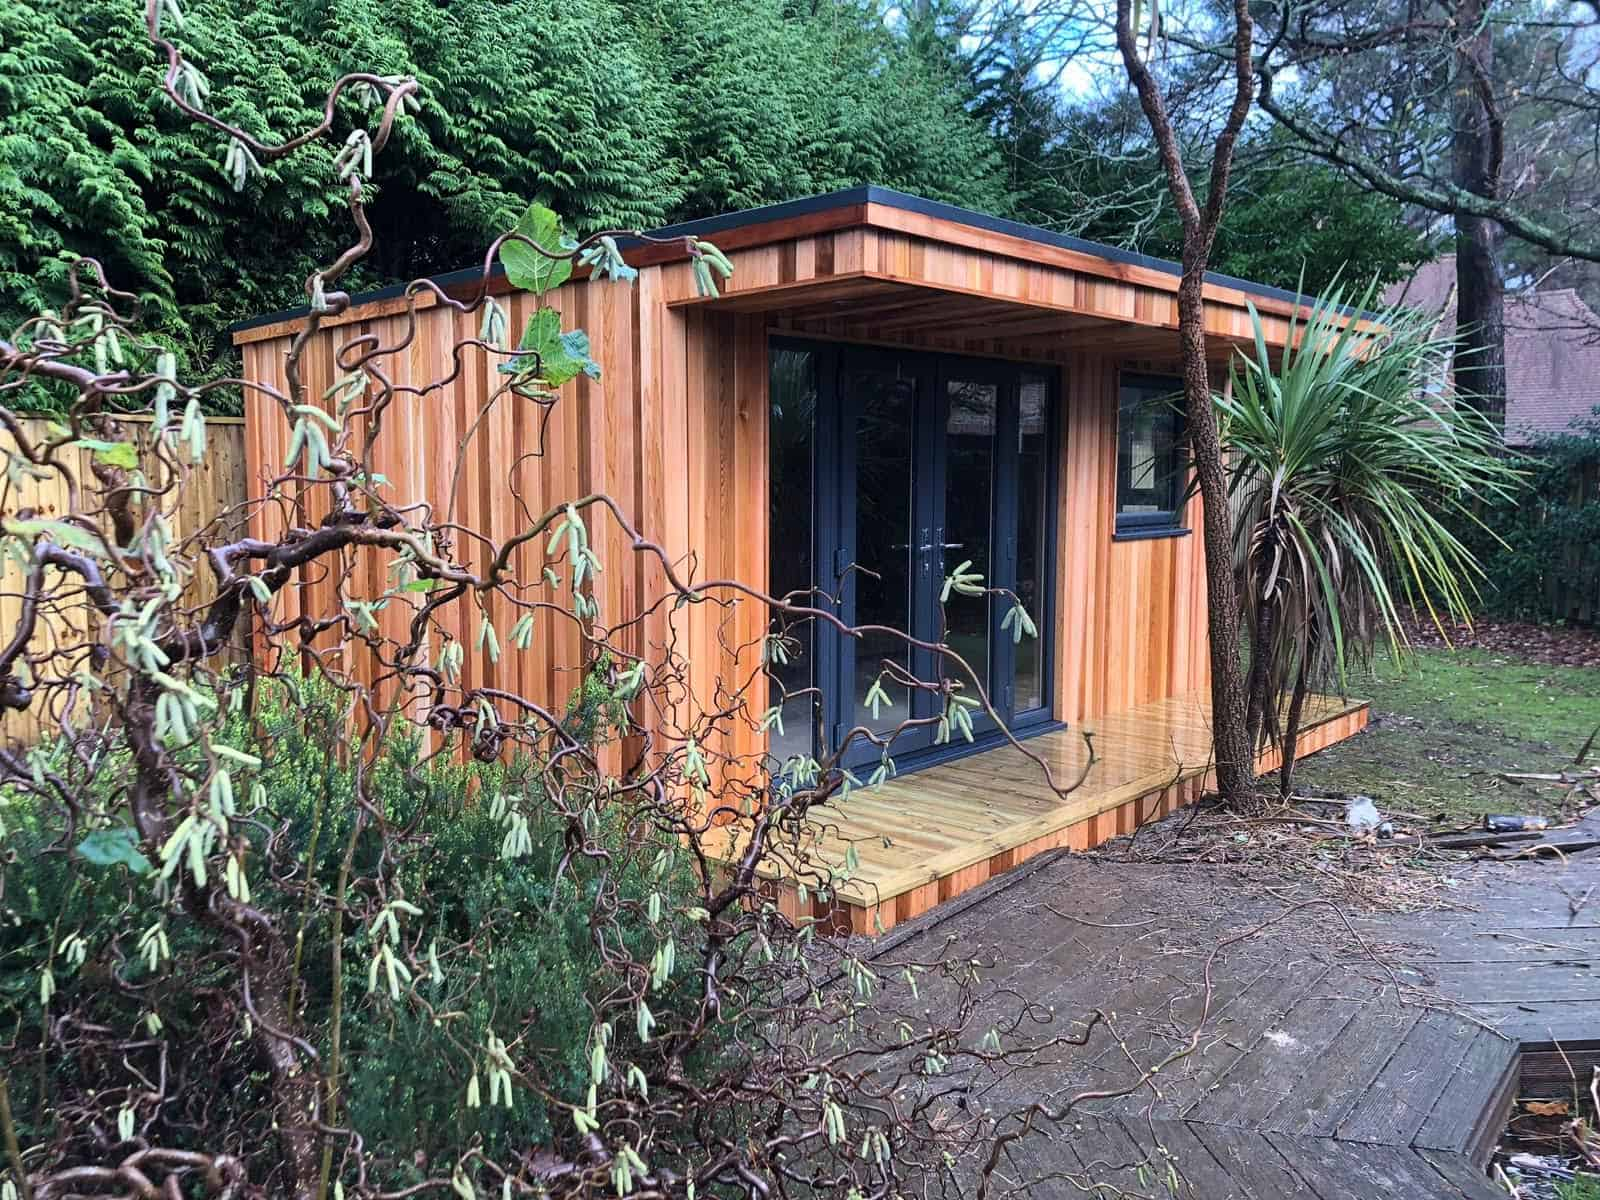 Garden cabins for winter too!